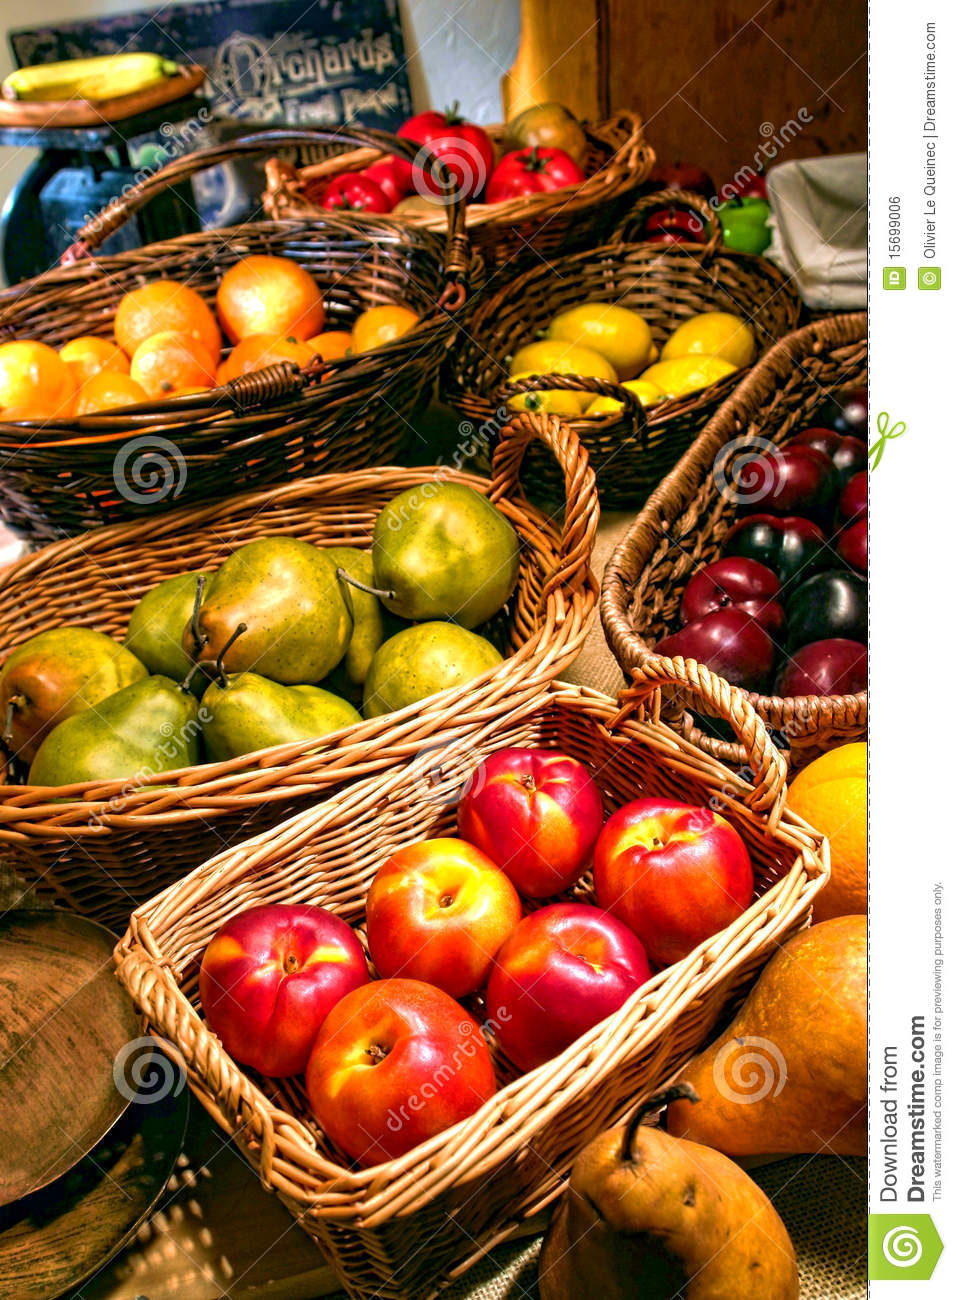 fruit market fruits basket